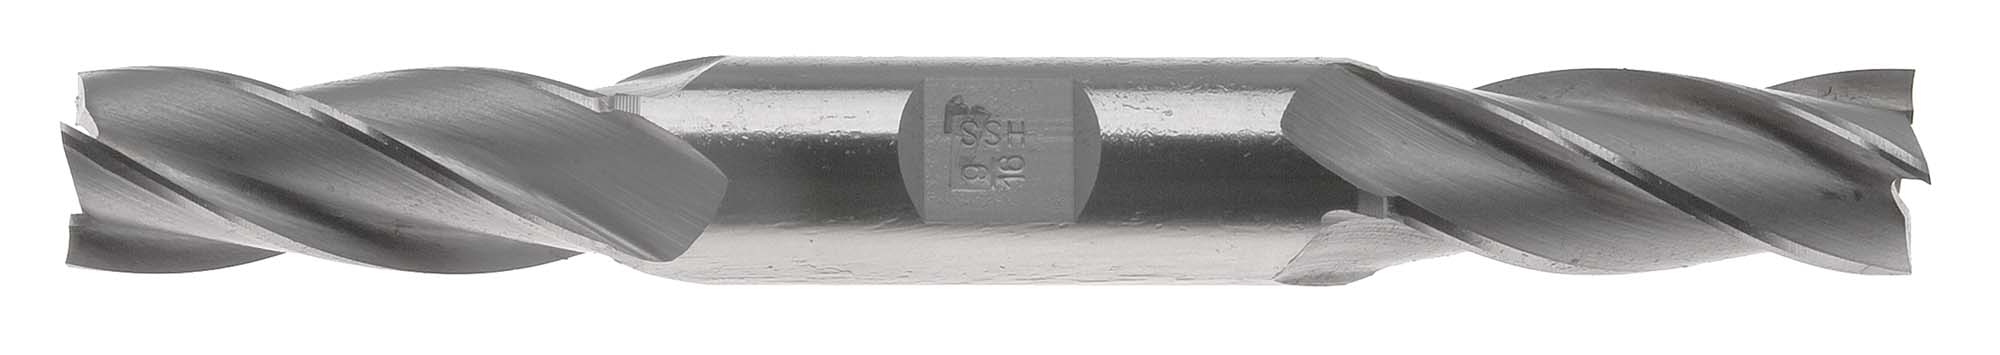 "EM-B10  5/16"" Double End 4 Flute End Mill, High Speed Steel, 3/8"" Shank"